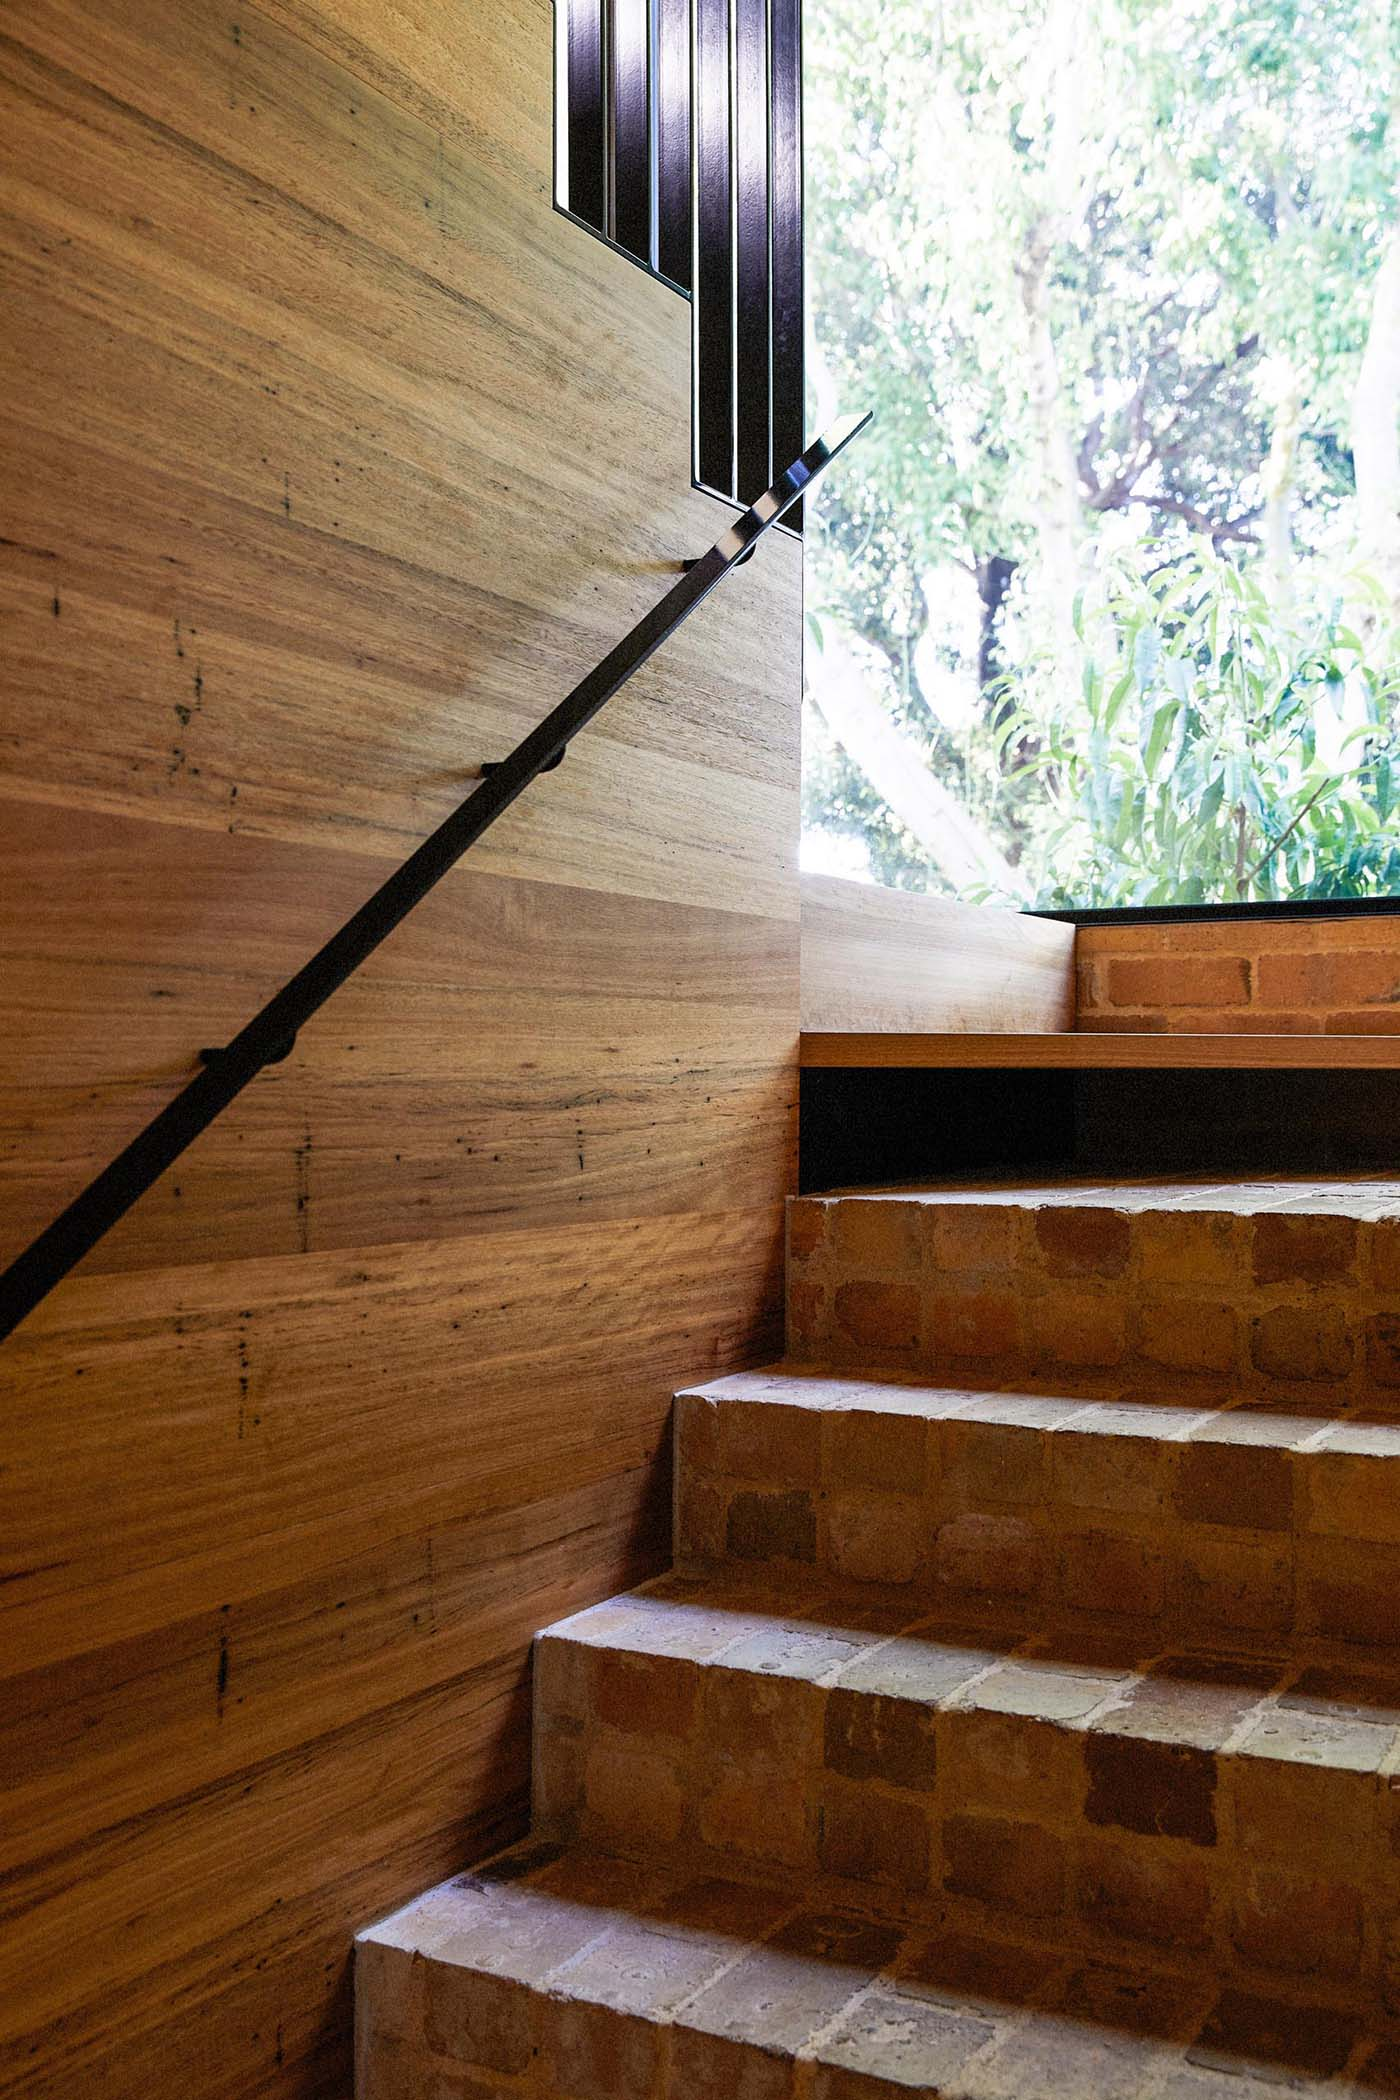 This staircase features the recycled yellow bricks that then transition to connect with the wood stair treads. A large black framed window perfectly frames the tree and outdoor dining area.